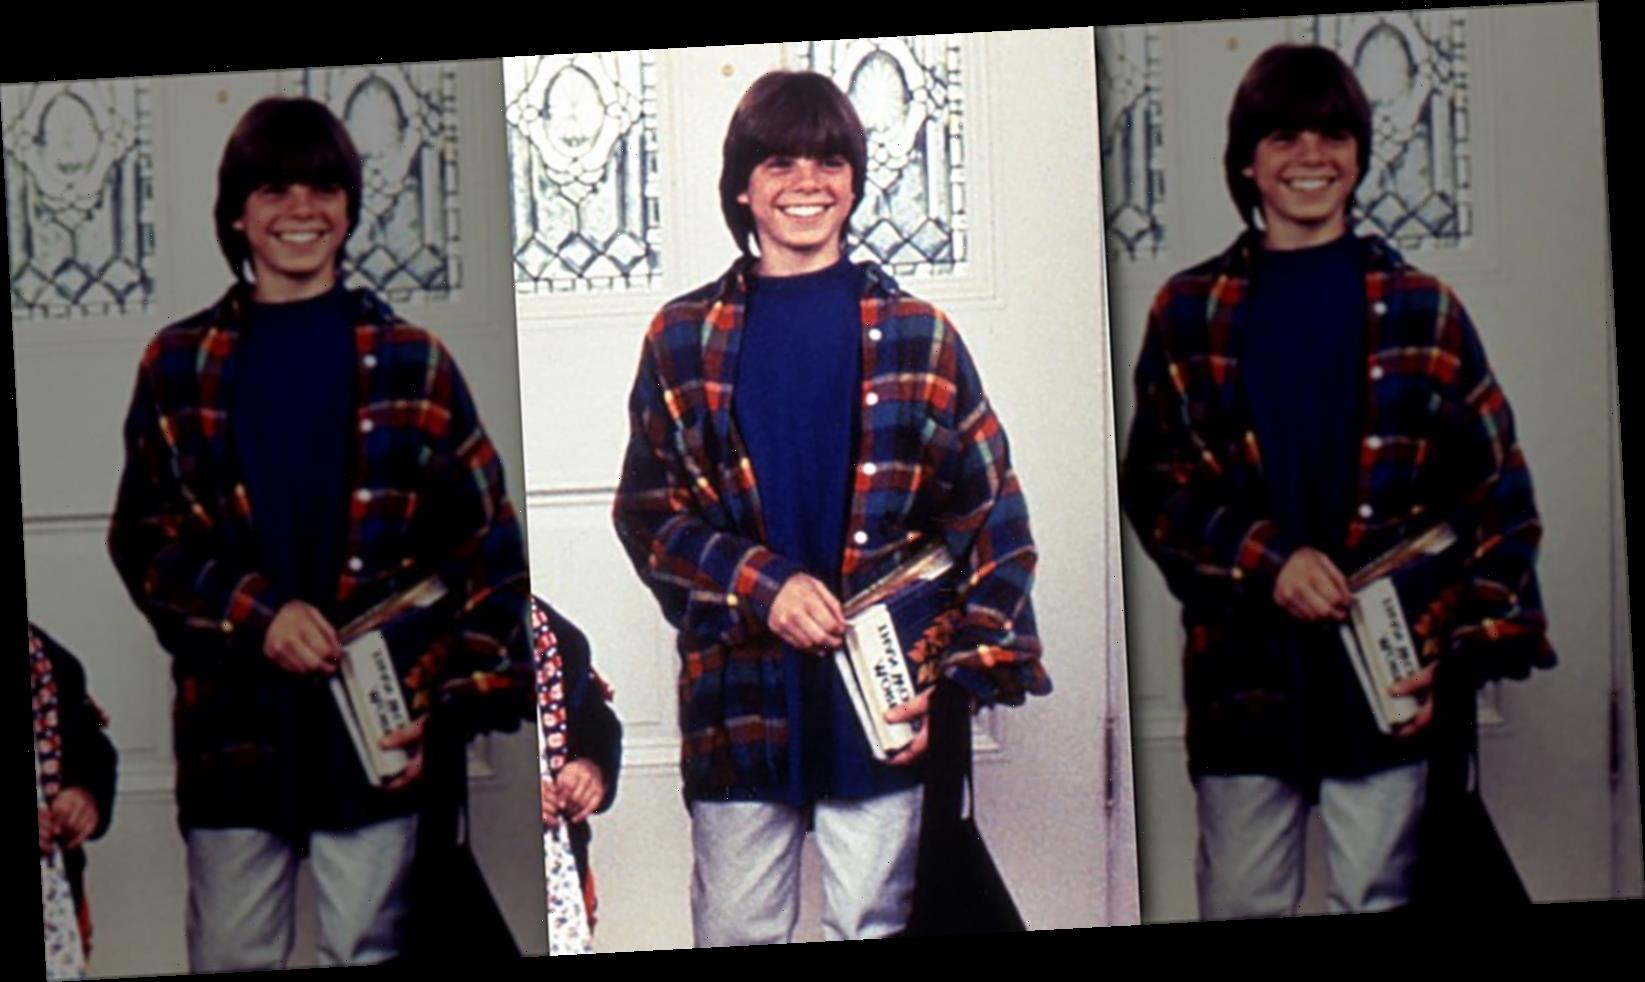 The kid from Mrs. Doubtfire is an absolute hunk now